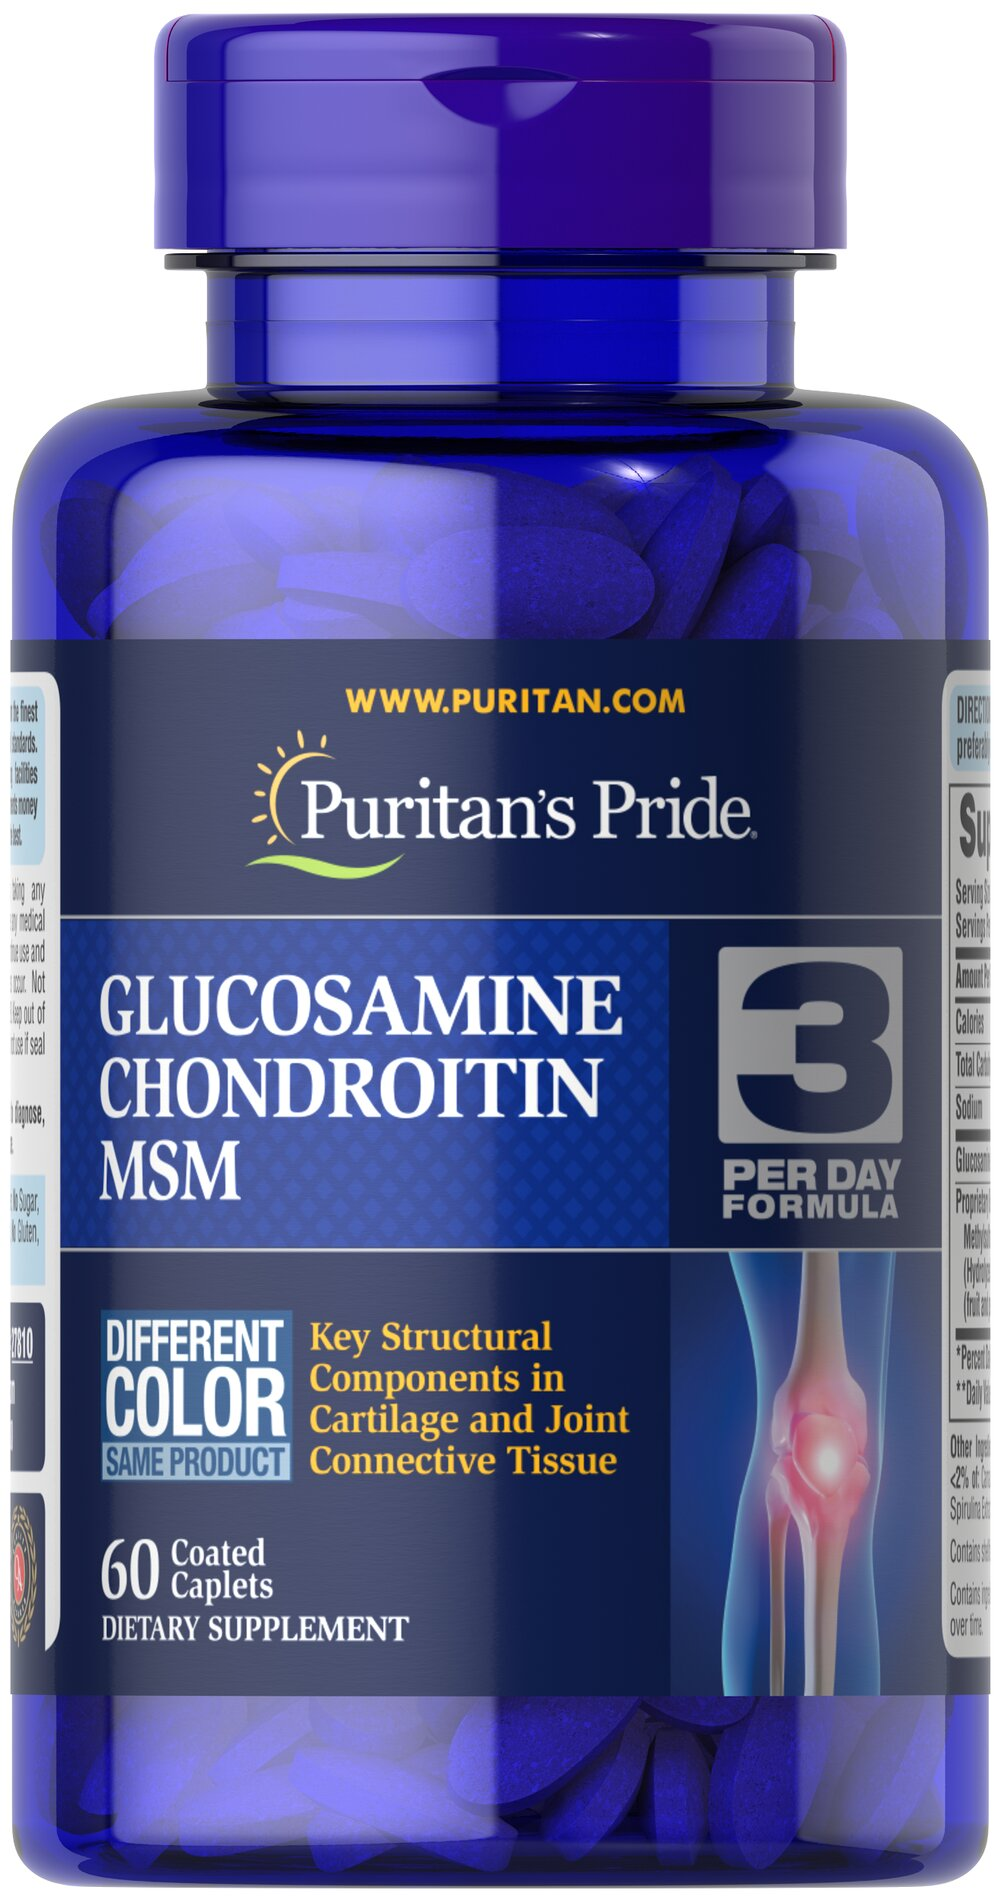 Double Strength Glucosamine, Chondroitin & MSM Joint Soother® <p>Combines the top three structural components found in popular joint support products — Glucosamine, Chondroitin and MSM — with amino and herbal support from Collagen and Boswellia Serrata**</p><p>This high-quality formula delivers 1,500 mg of Glucosamine HCl to help nourish and support cartilage, and helps with occasional joint stress due to exercise or physical activity**</p> 60 Caplets  $11.49